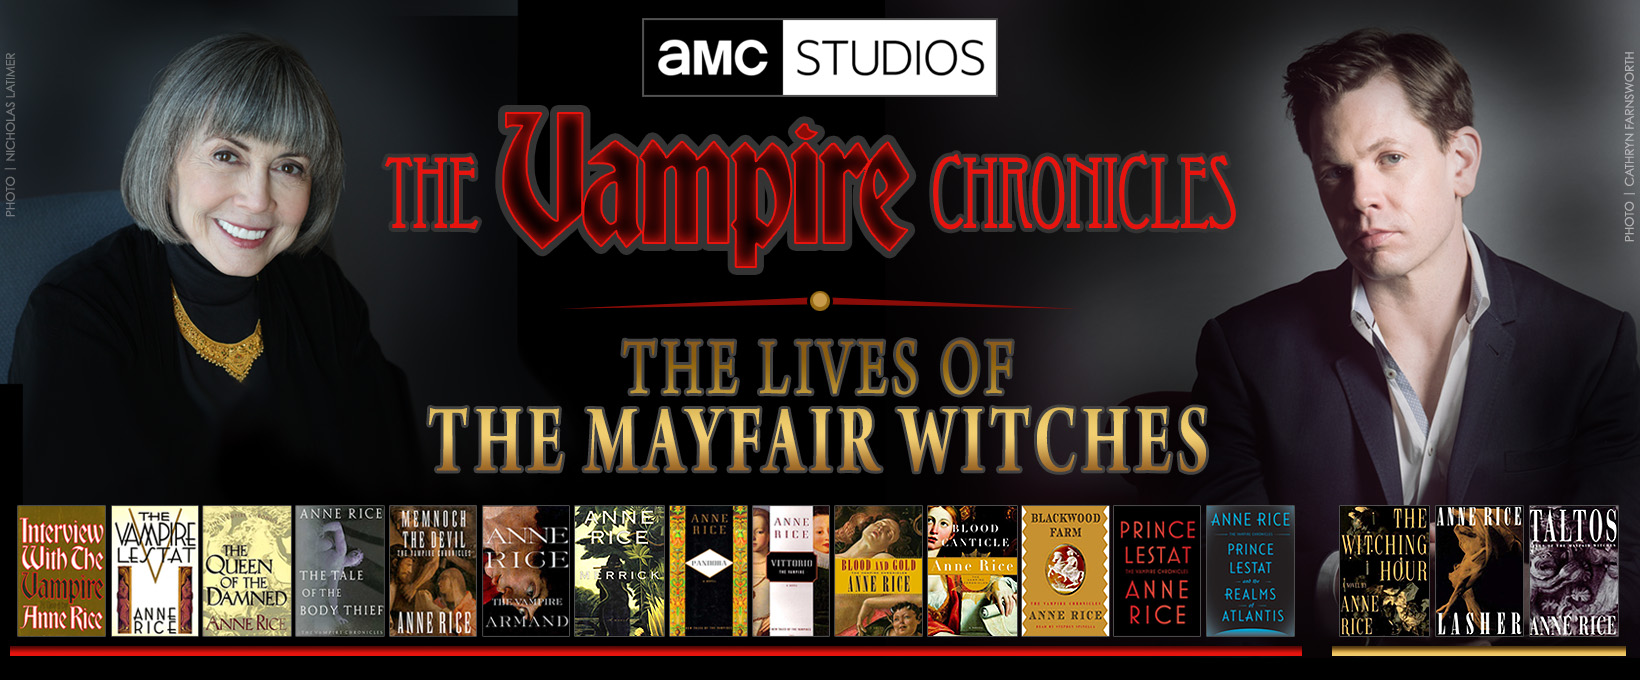 Lives of the Mayfair Witches and Vampire Chronicles by Anne Rice for AMC Studios